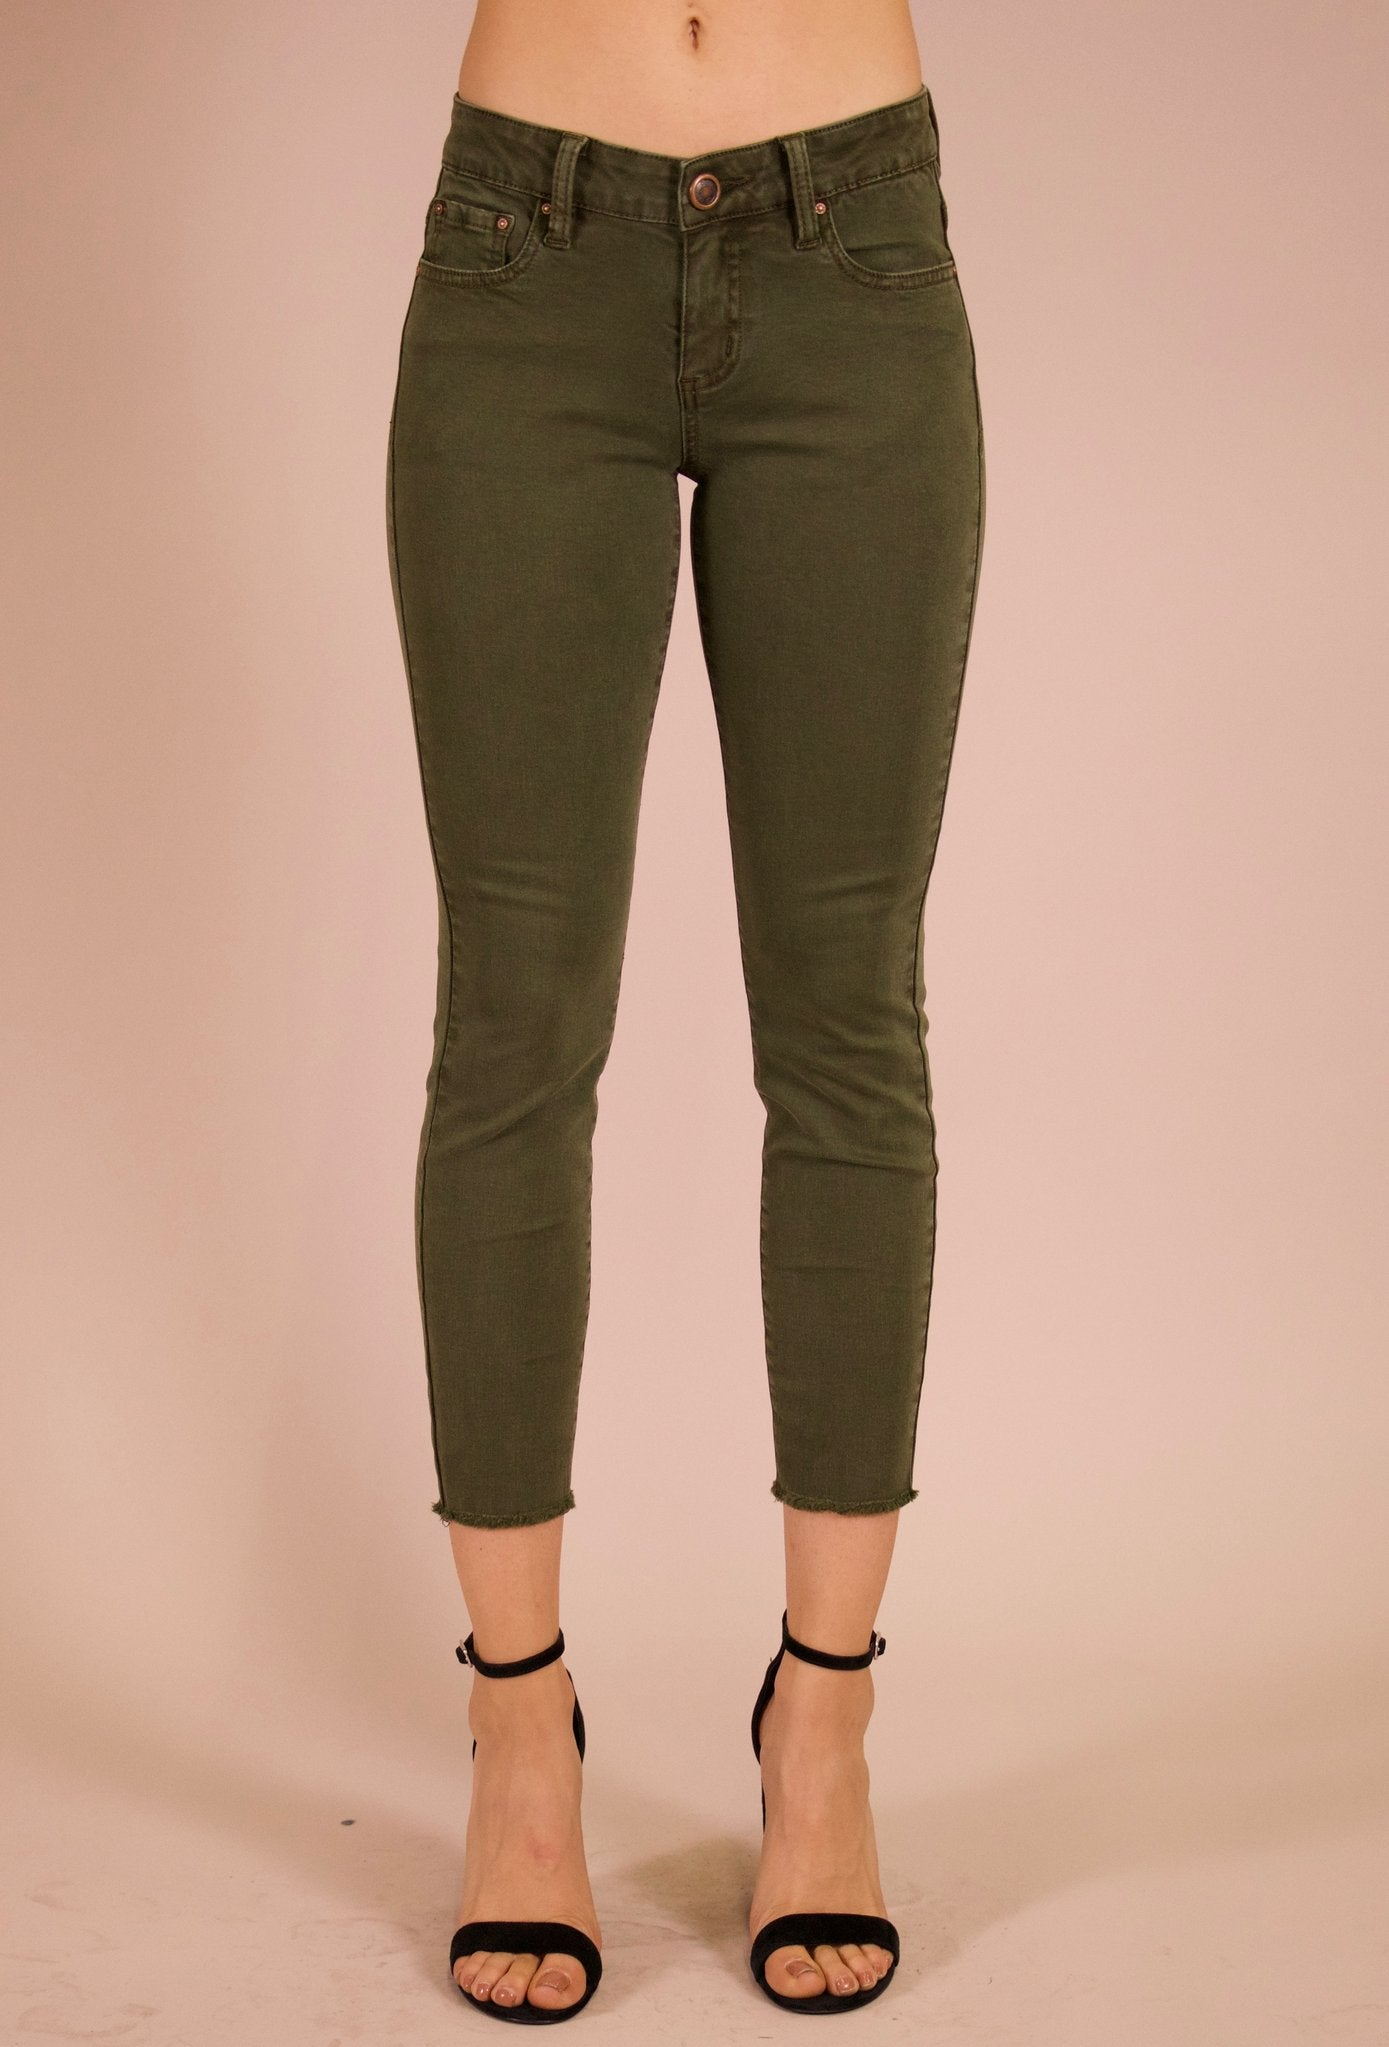 Angie Cropped Jeans in Fatigue Green